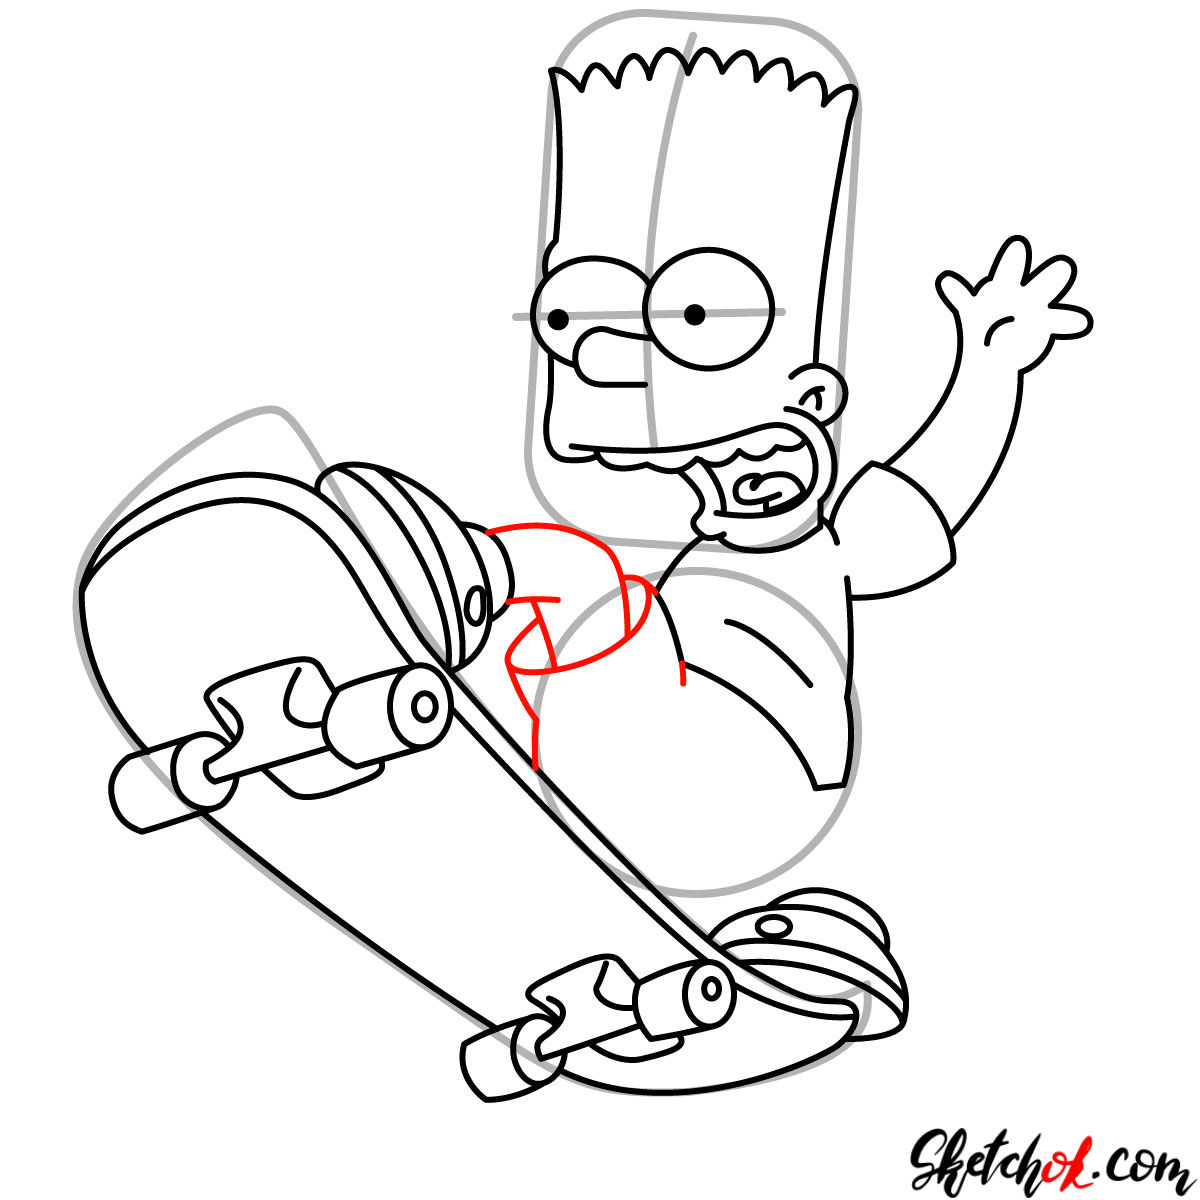 How to draw Bart Simpson on a skateboard - step 10